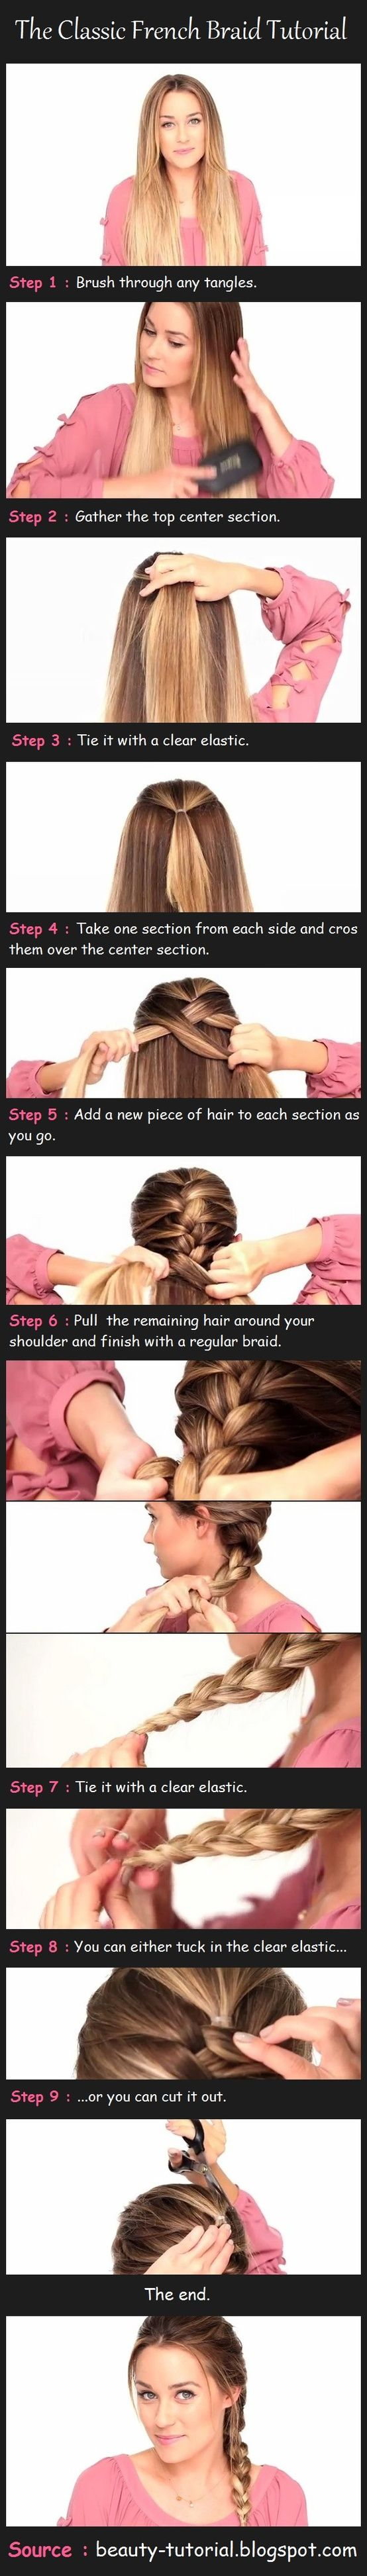 french braid yourself